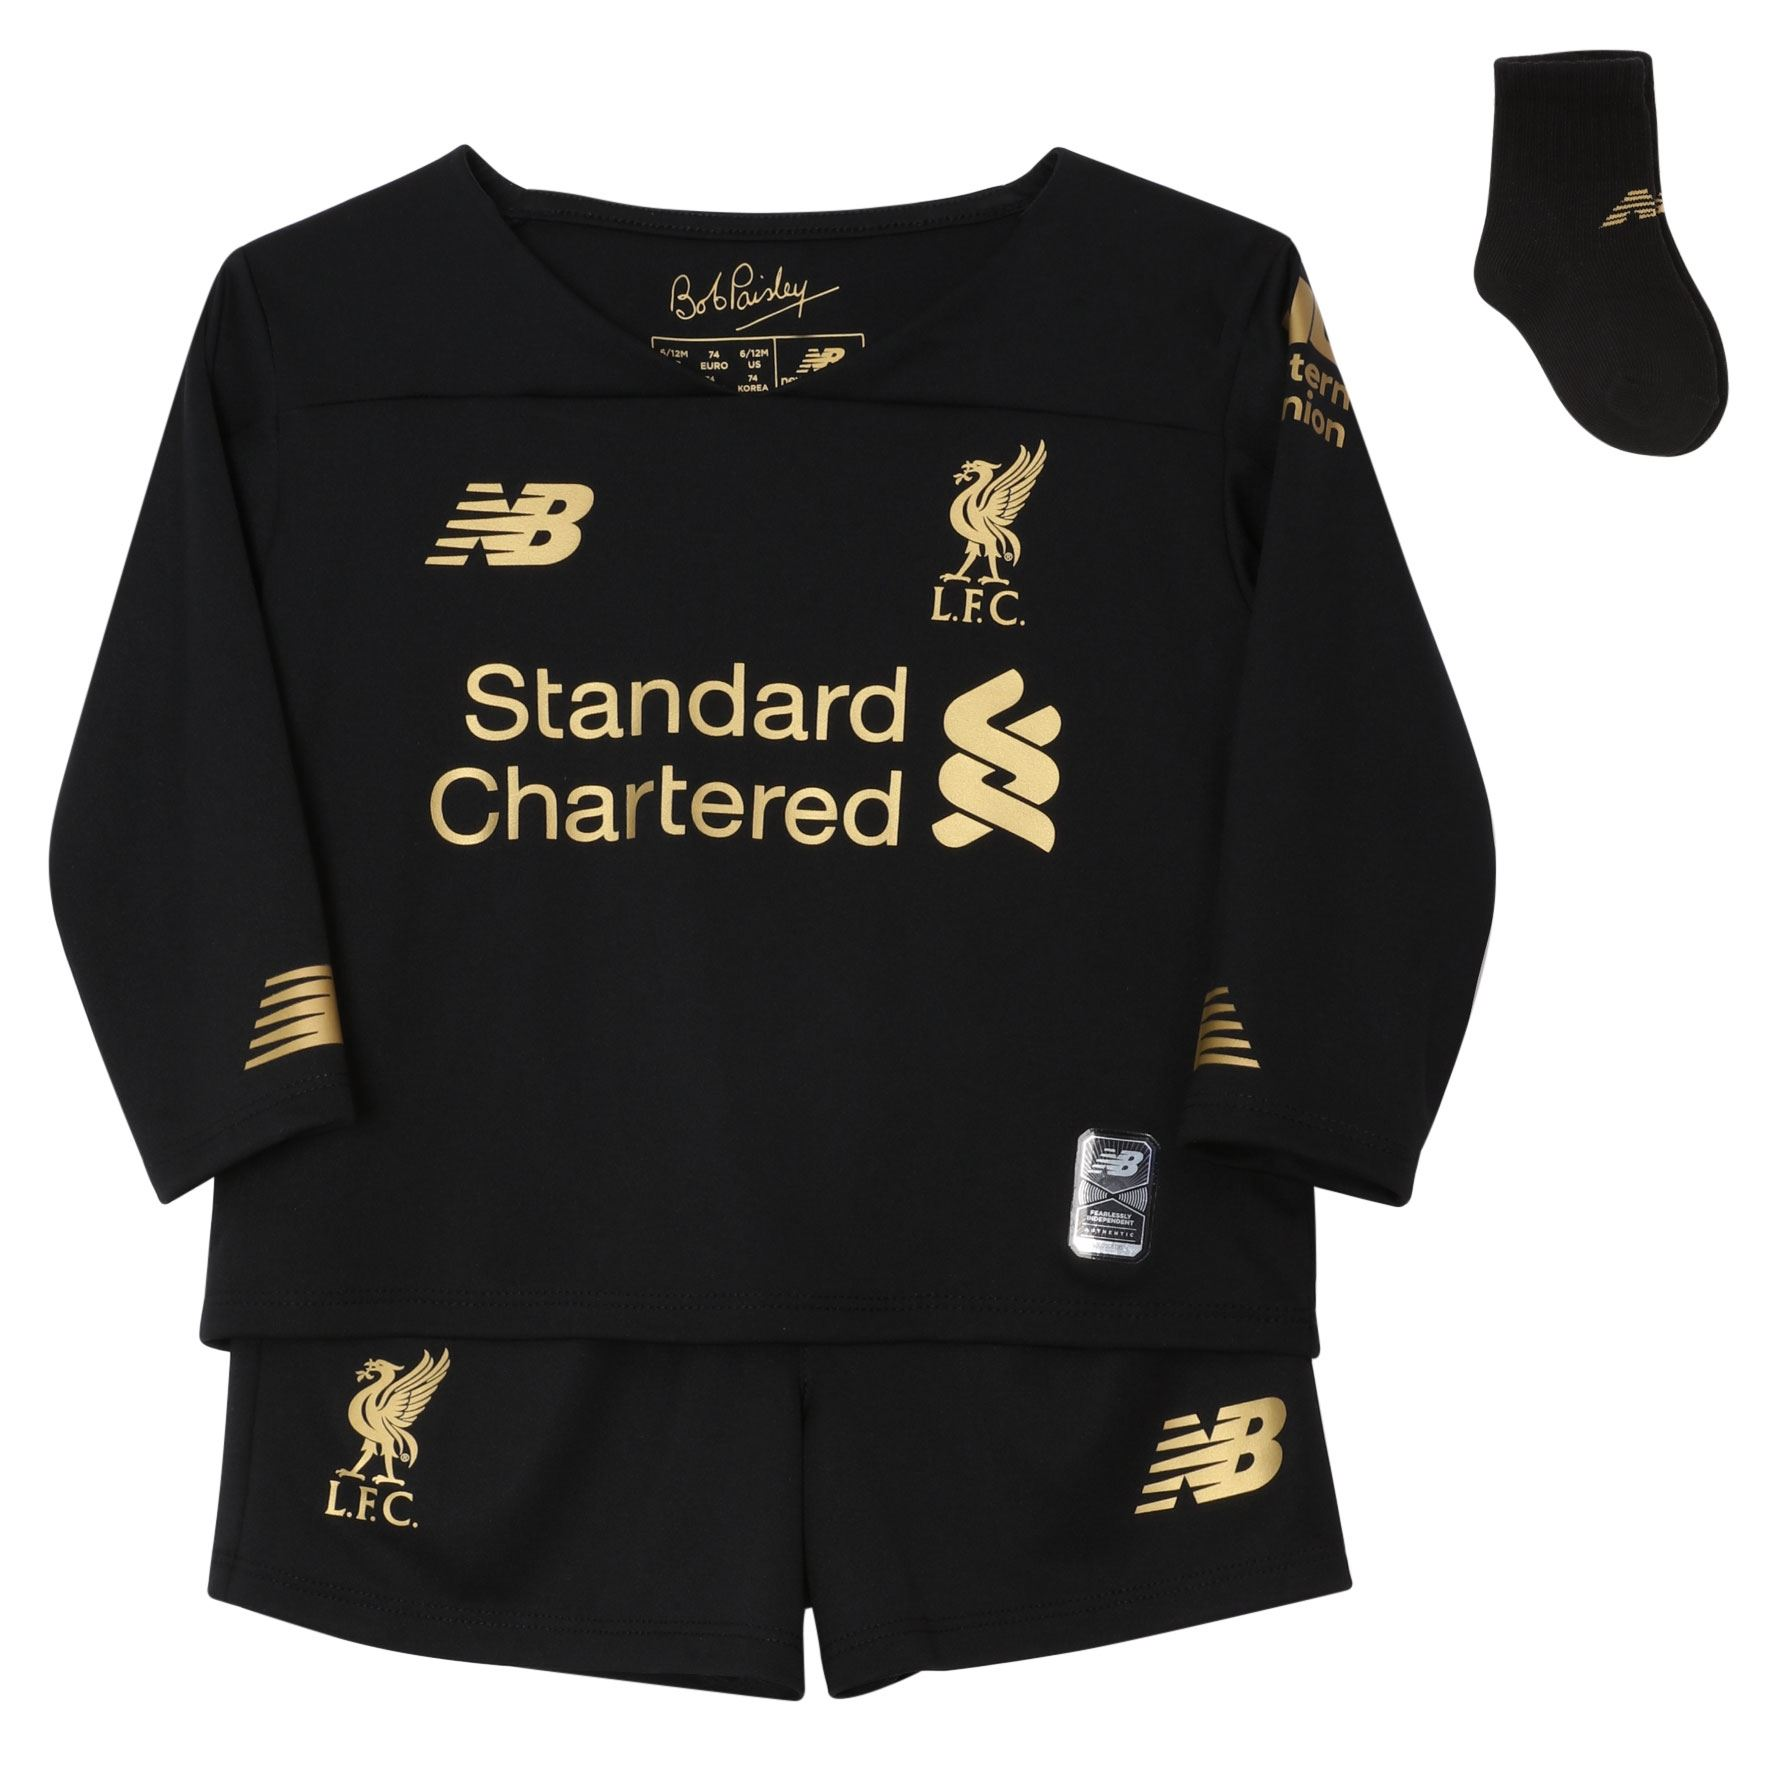 timeless design b1eee aeea3 Details about Liverpool FC Home Kit Black Baby Boys Goalkeeper Kit  2019/2020 LFC Official